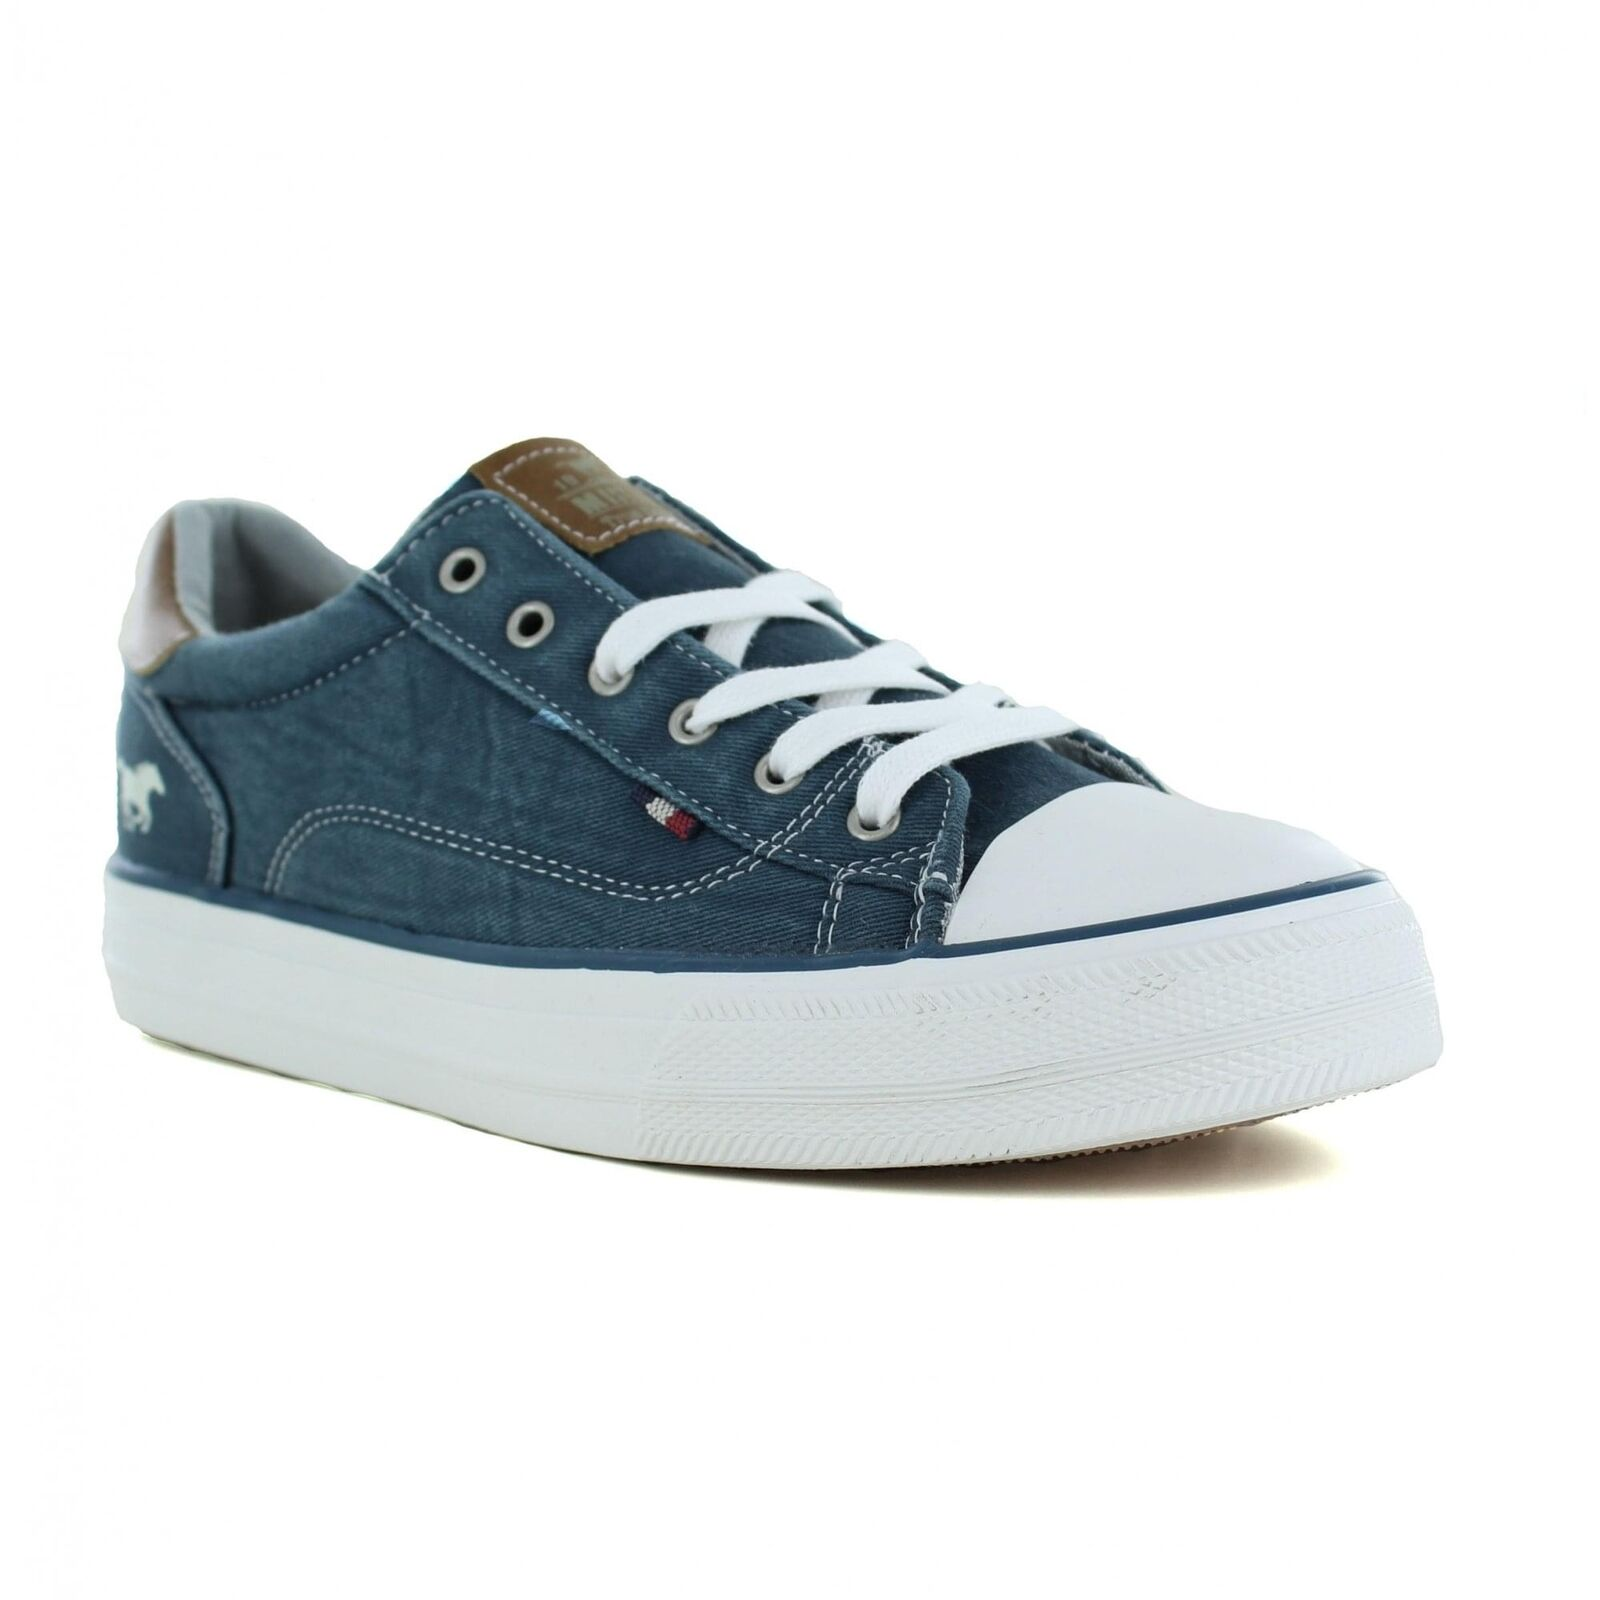 Mustang 1272-301-810 Damenschuhe Fashion Trainers - Petrol Blau